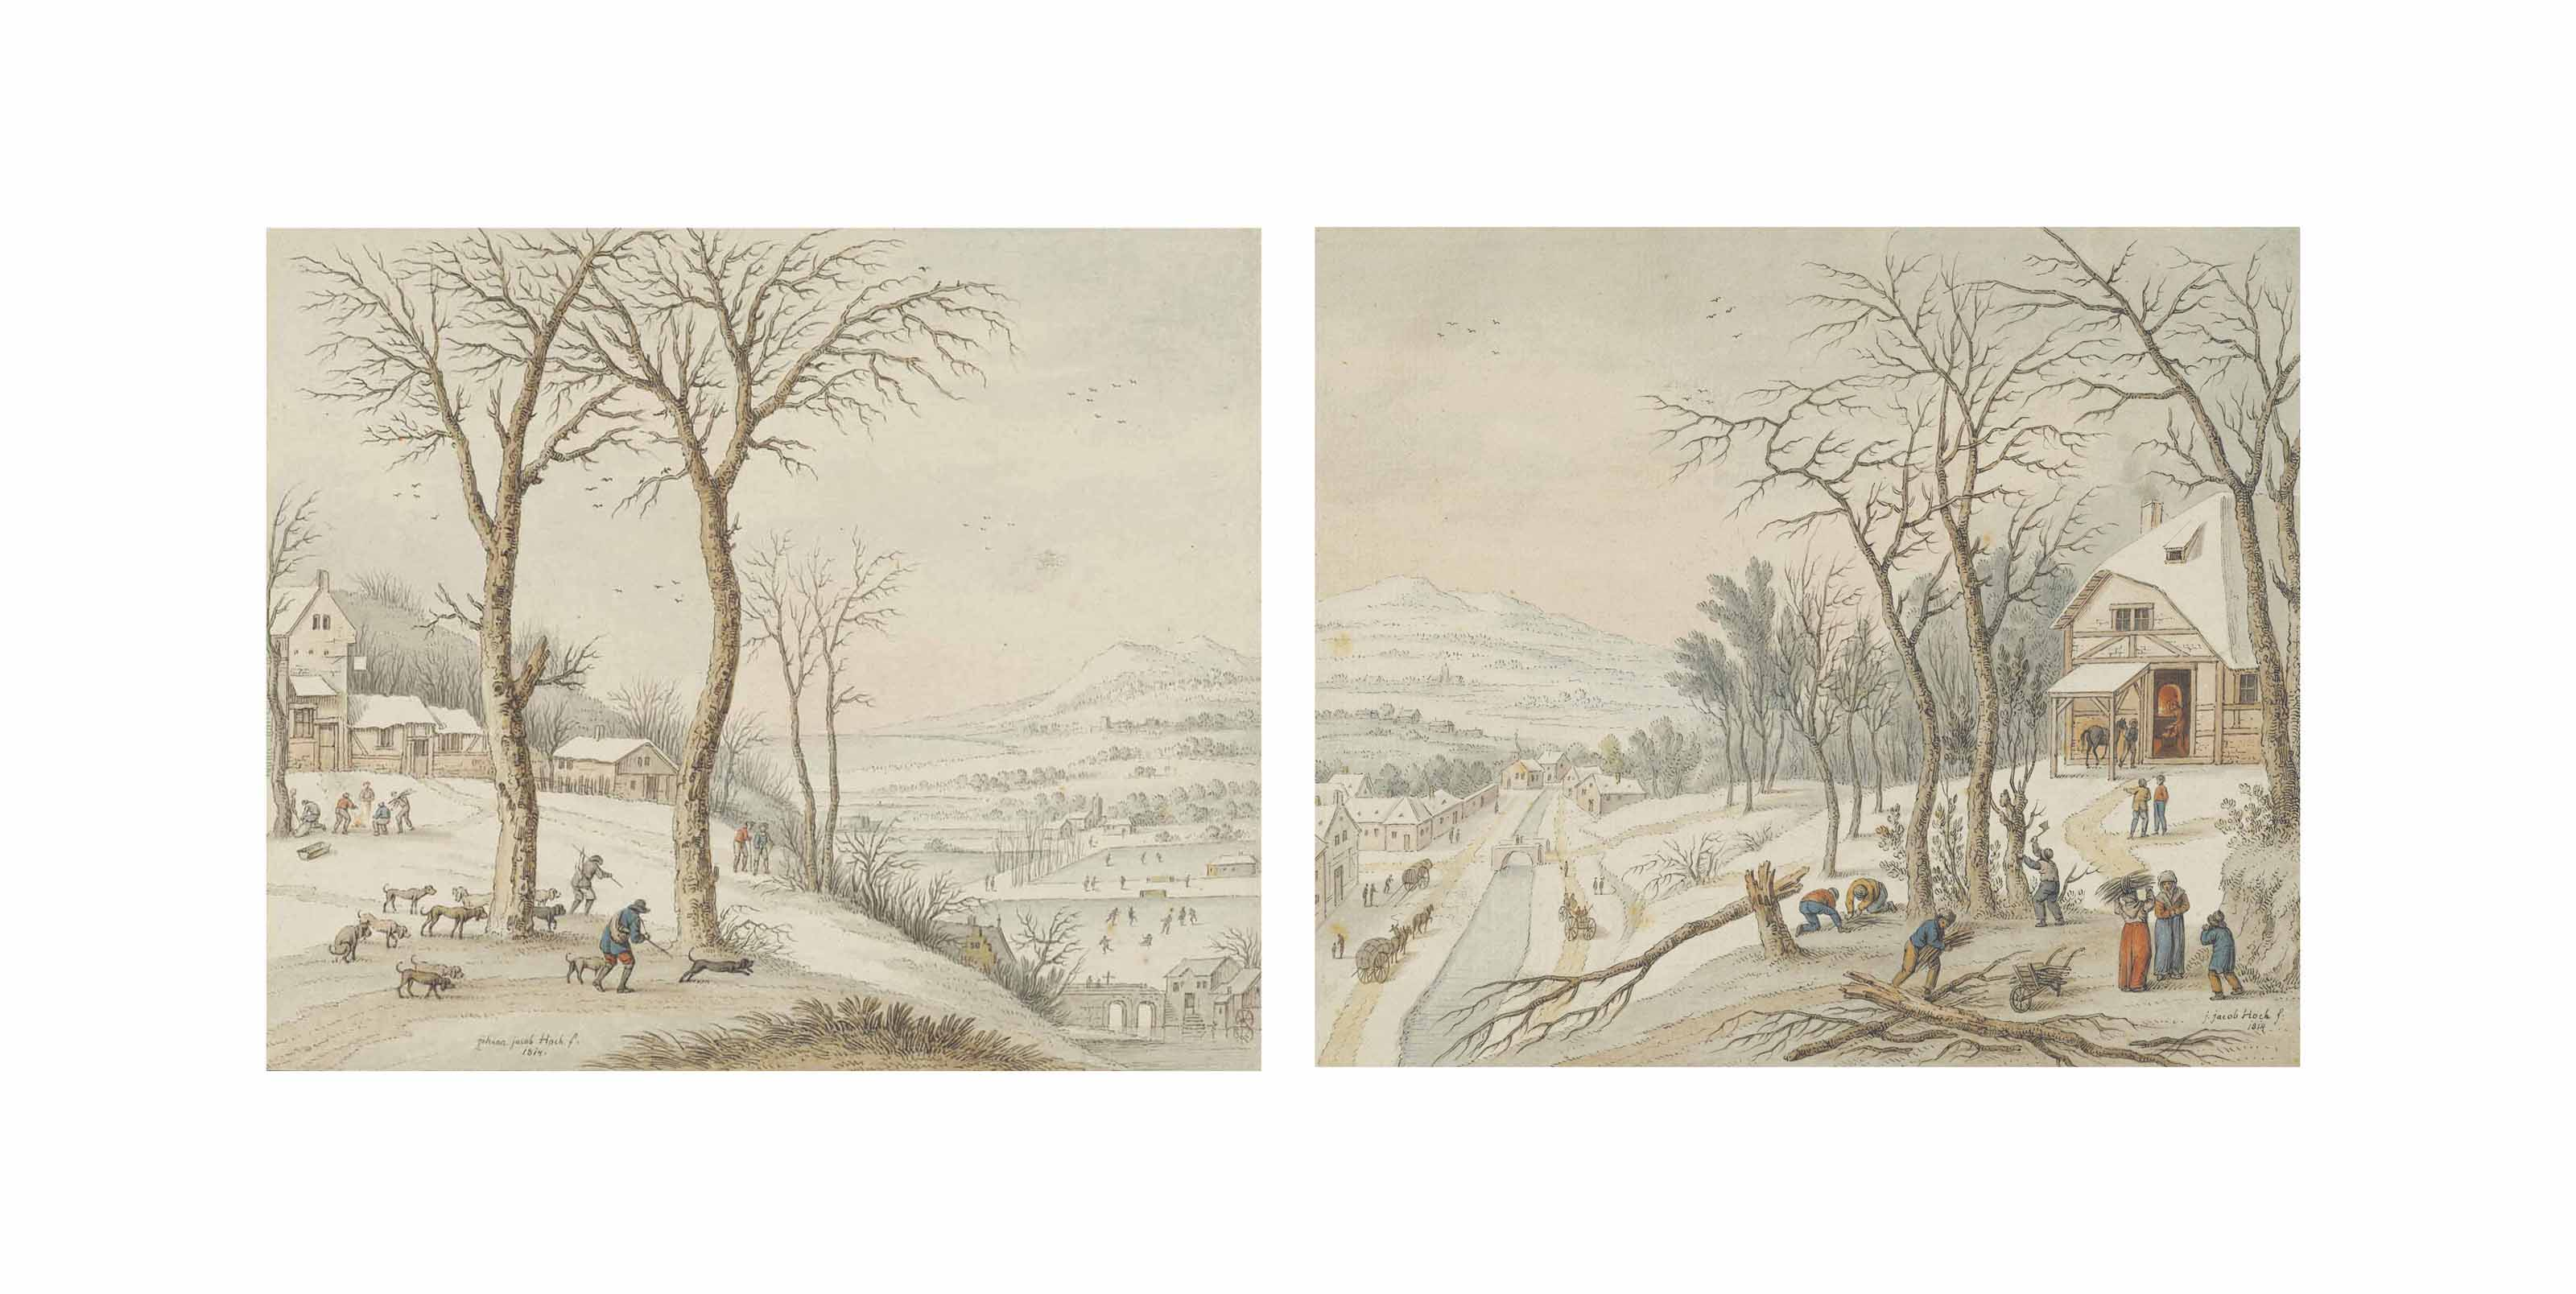 Hunters in a winter landscape with skaters beyond; and Woodcutters beside a forge in a winter landscape